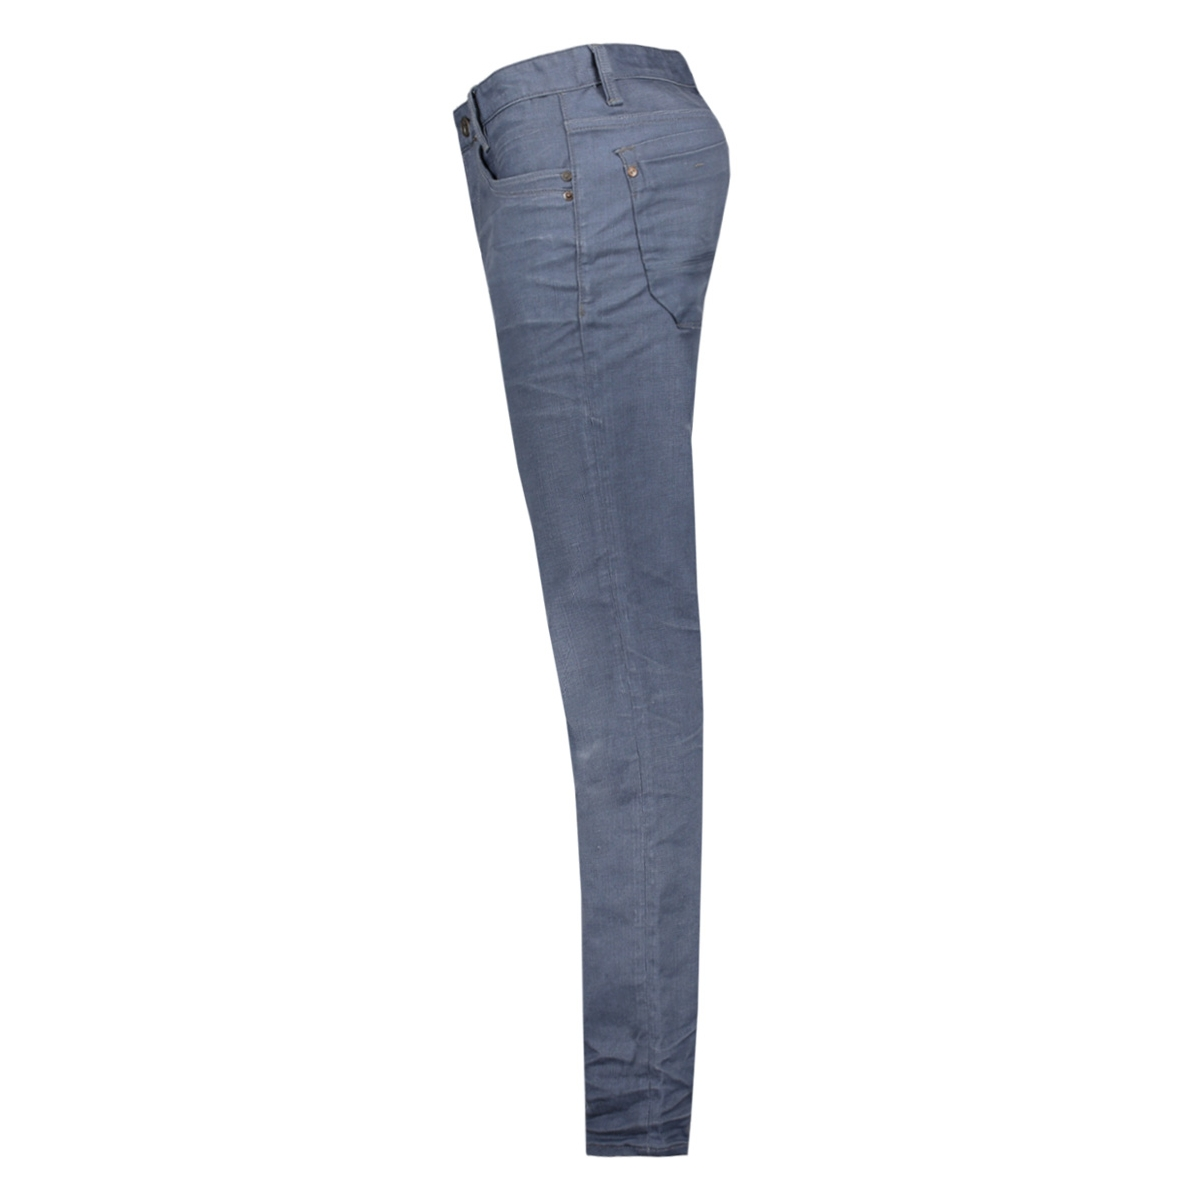 skymaster coated stretch denim ptr175650 pme legend jeans sbg